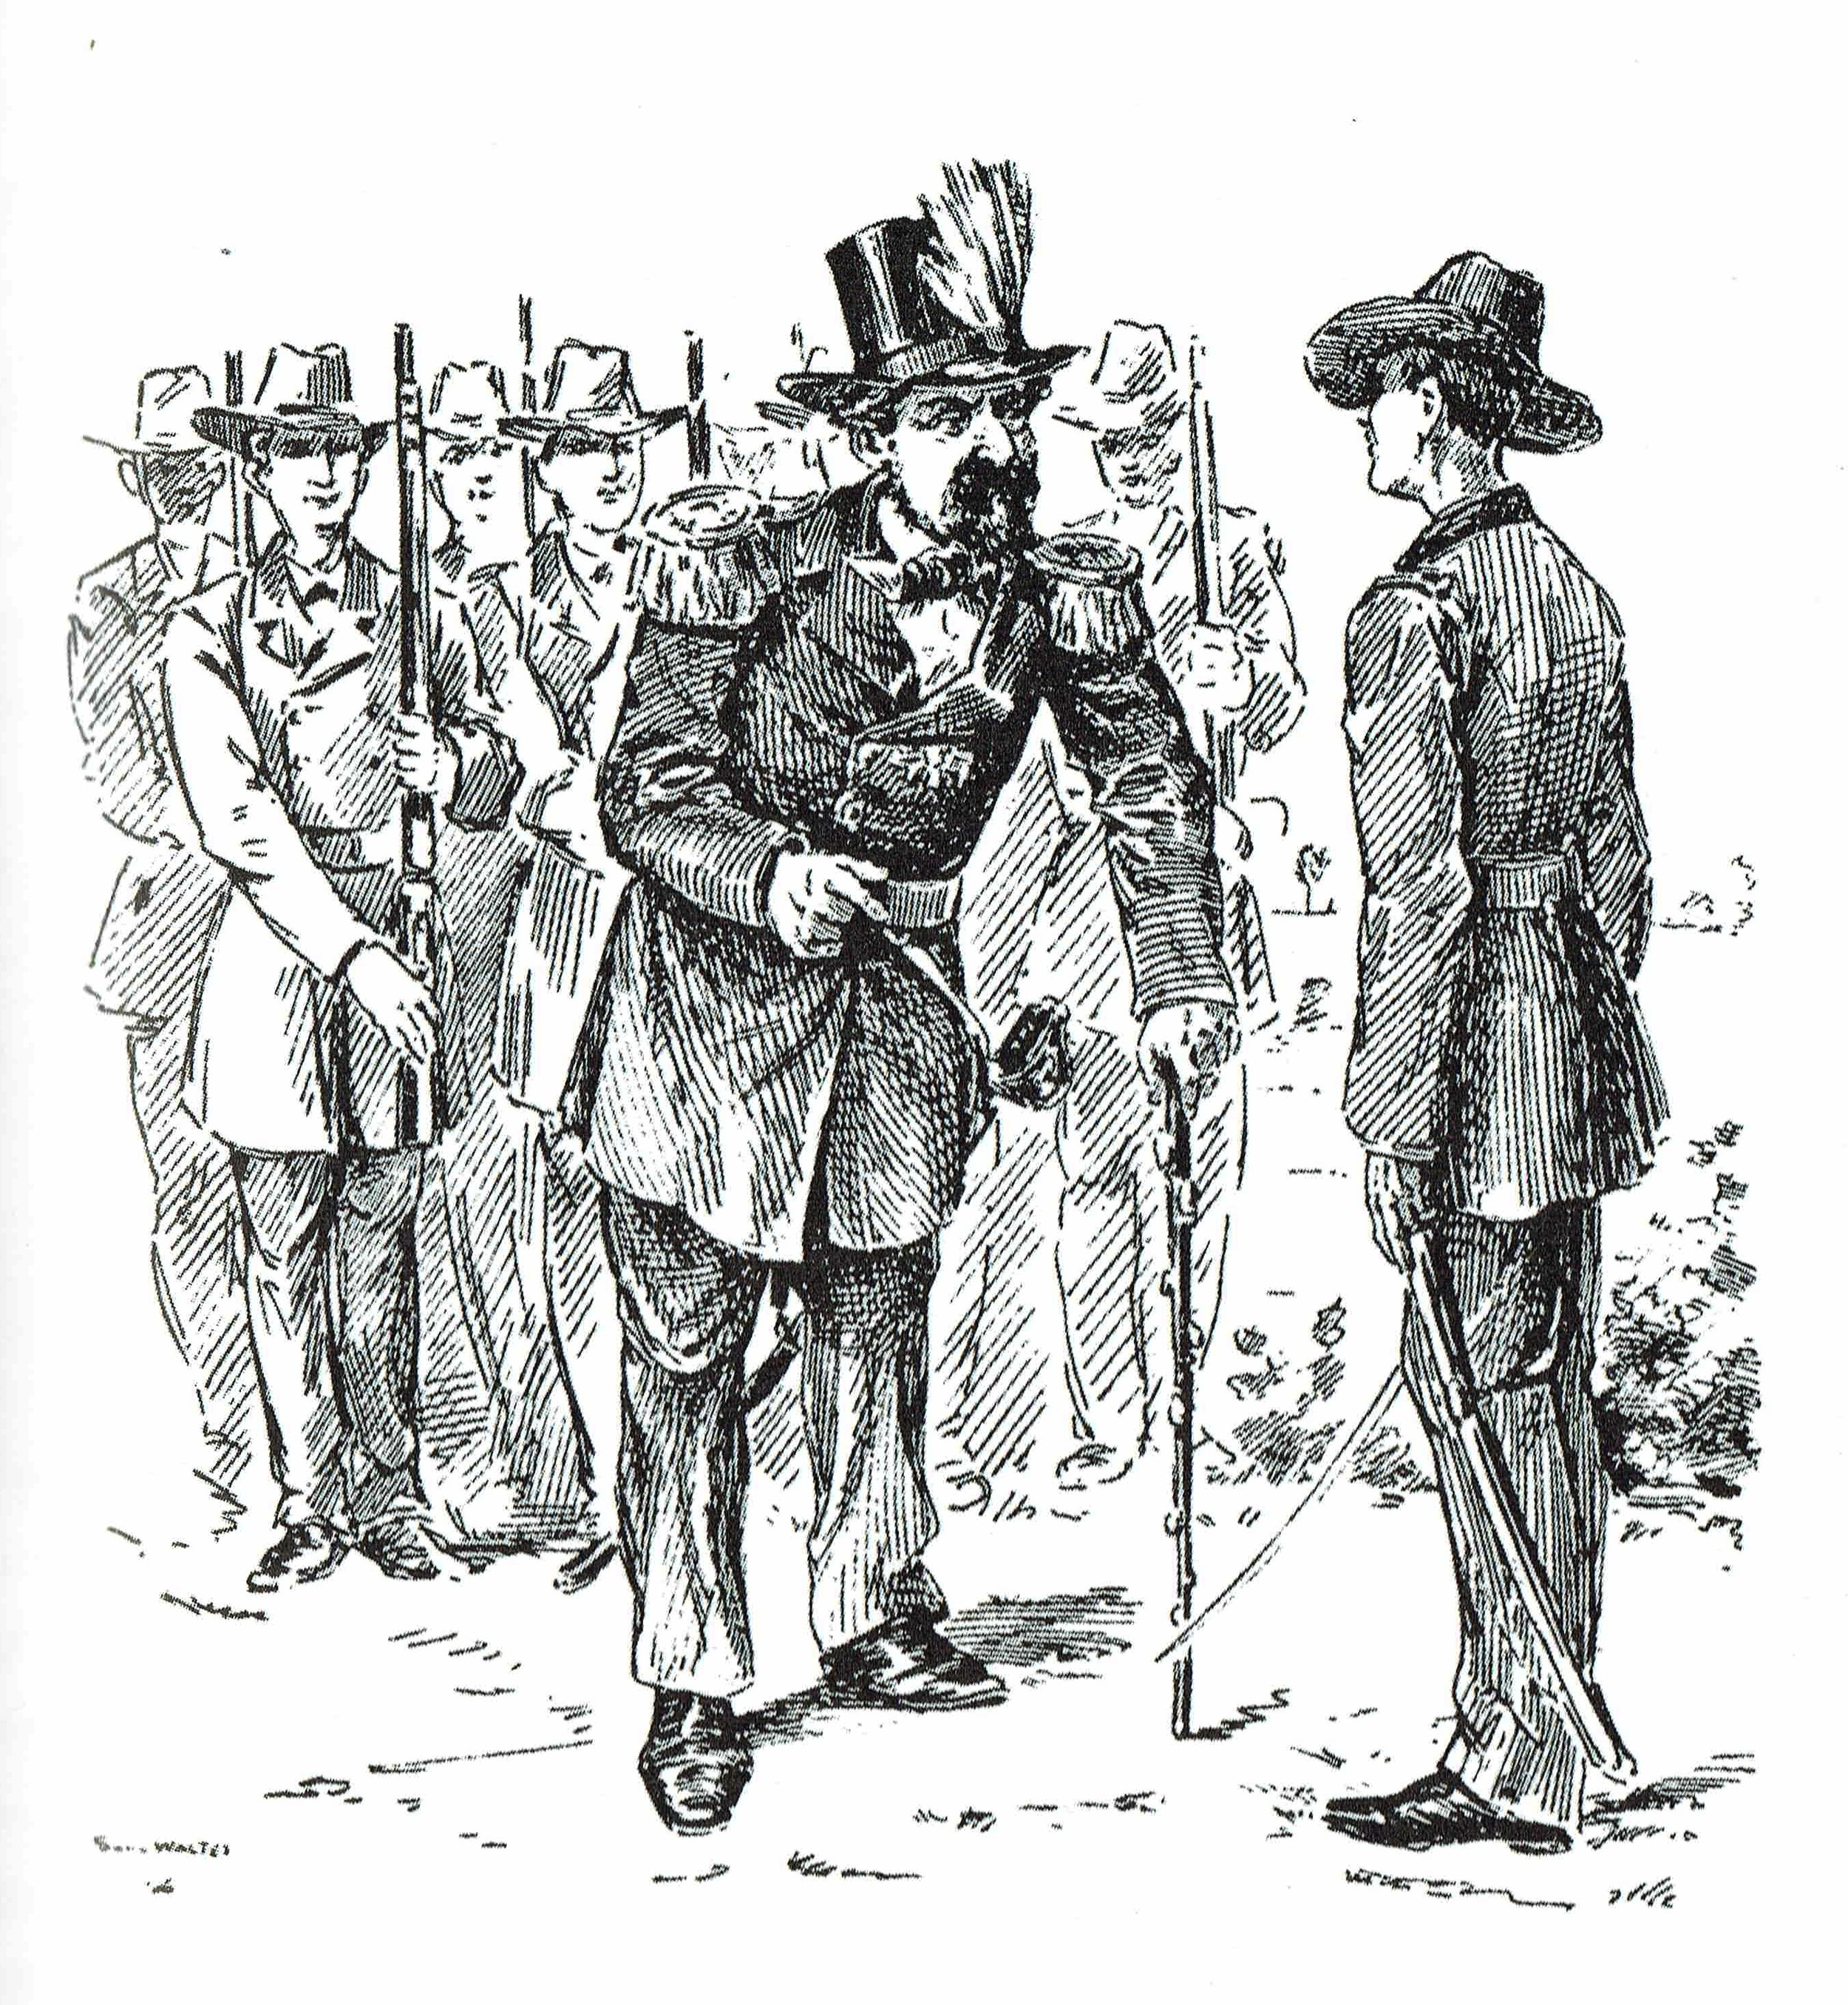 """Emperor Norton, Reviewing the University Battalion at Berkeley  (1892), by Solly Walter (1846-1900). This originally appeared as an illustration for Francis E. Sheldon's article, """"Street Characters of San Francisco,"""" in  The Overland Monthly  of May 1892.Original article:  Making of America . Image: Richard Schwartz,  Eccentrics, Heroes,and Cutthroats of Old Berkeley  (RSB Books, 2007)."""